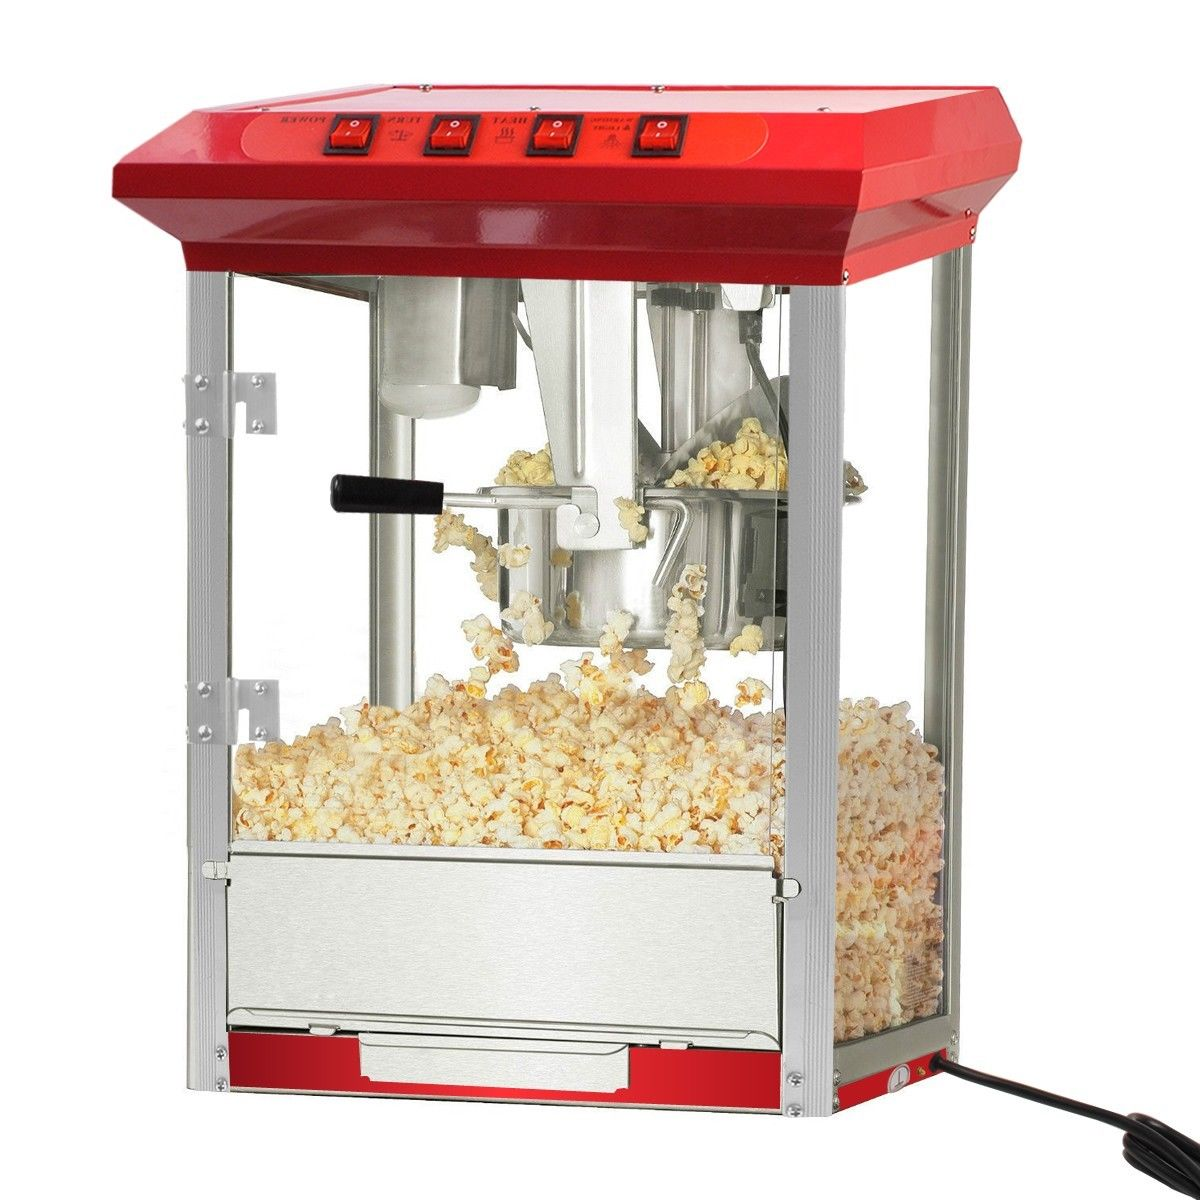 GHP 8-Oz Stainless Steel Kettle Capacity Red Tabletop Popcorn Machine with Crumb Tray